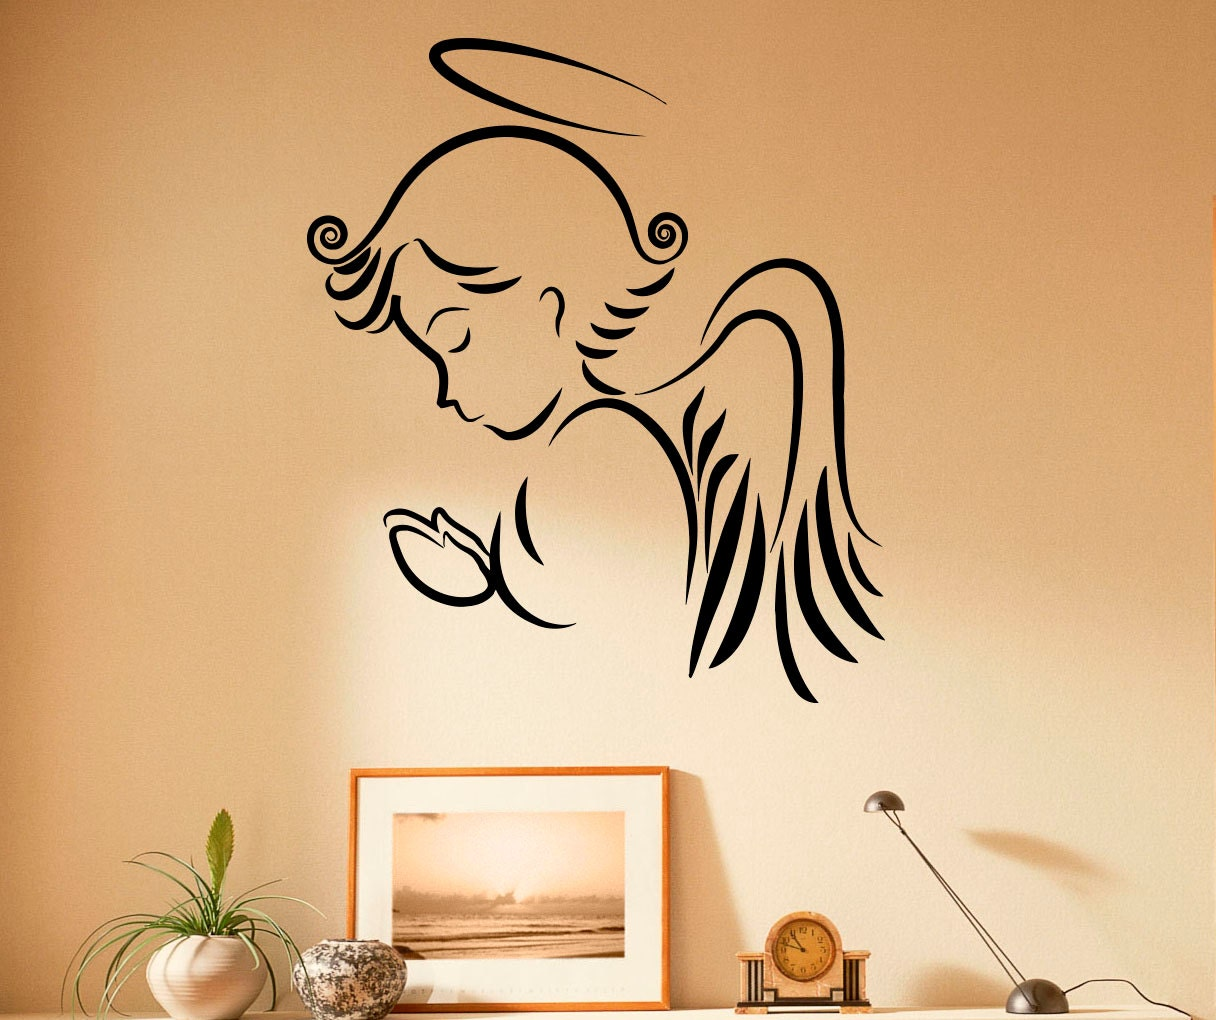 Wall Stickers How To Apply Angel Wall Decal Religion Vinyl Stickers Jesus Christ Home